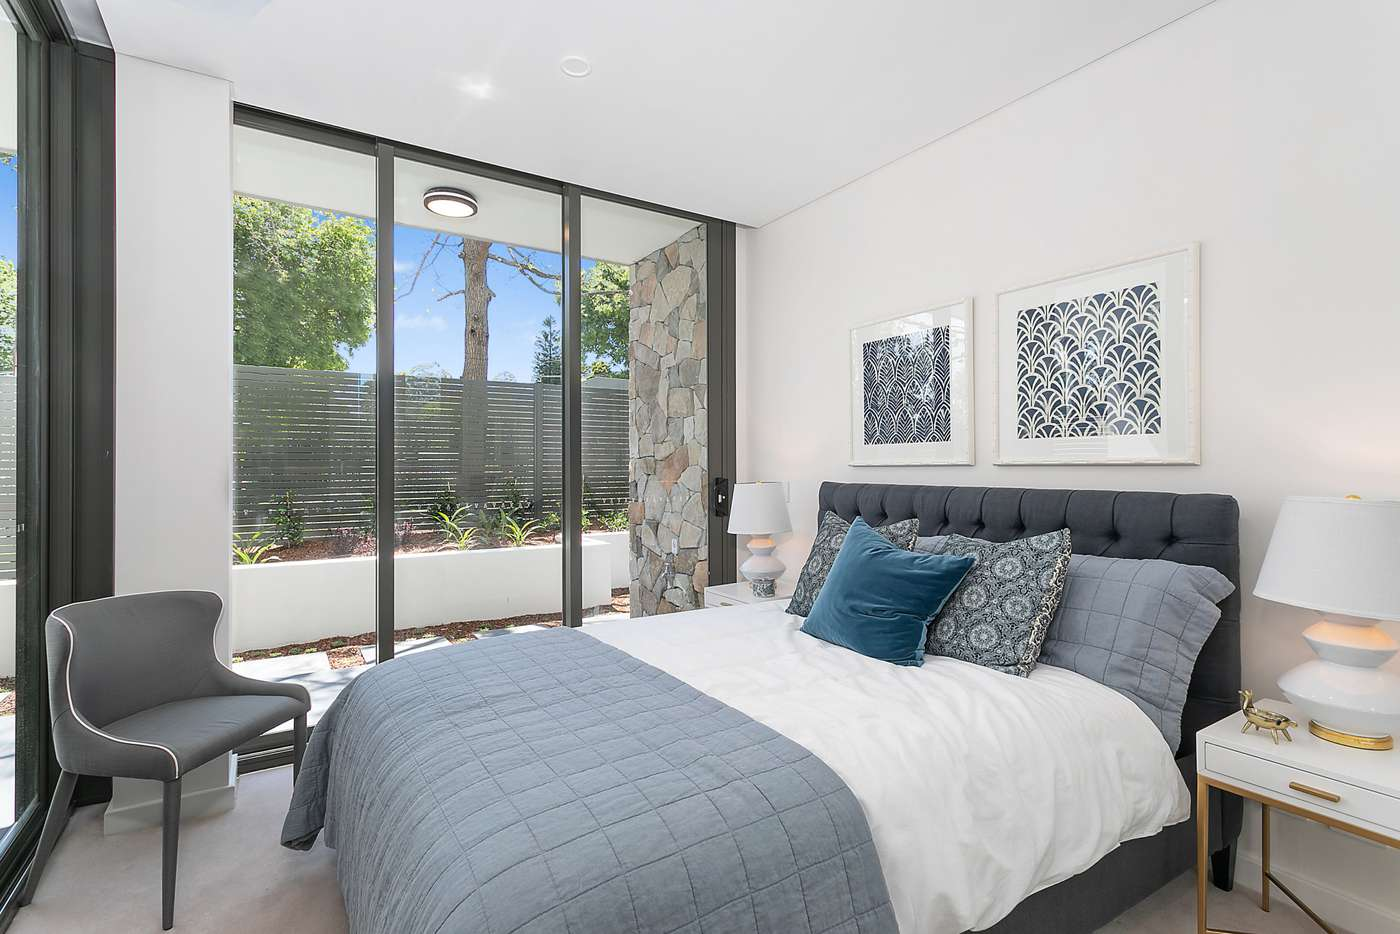 Seventh view of Homely apartment listing, A105/124-128 Killeaton Street, St Ives NSW 2075